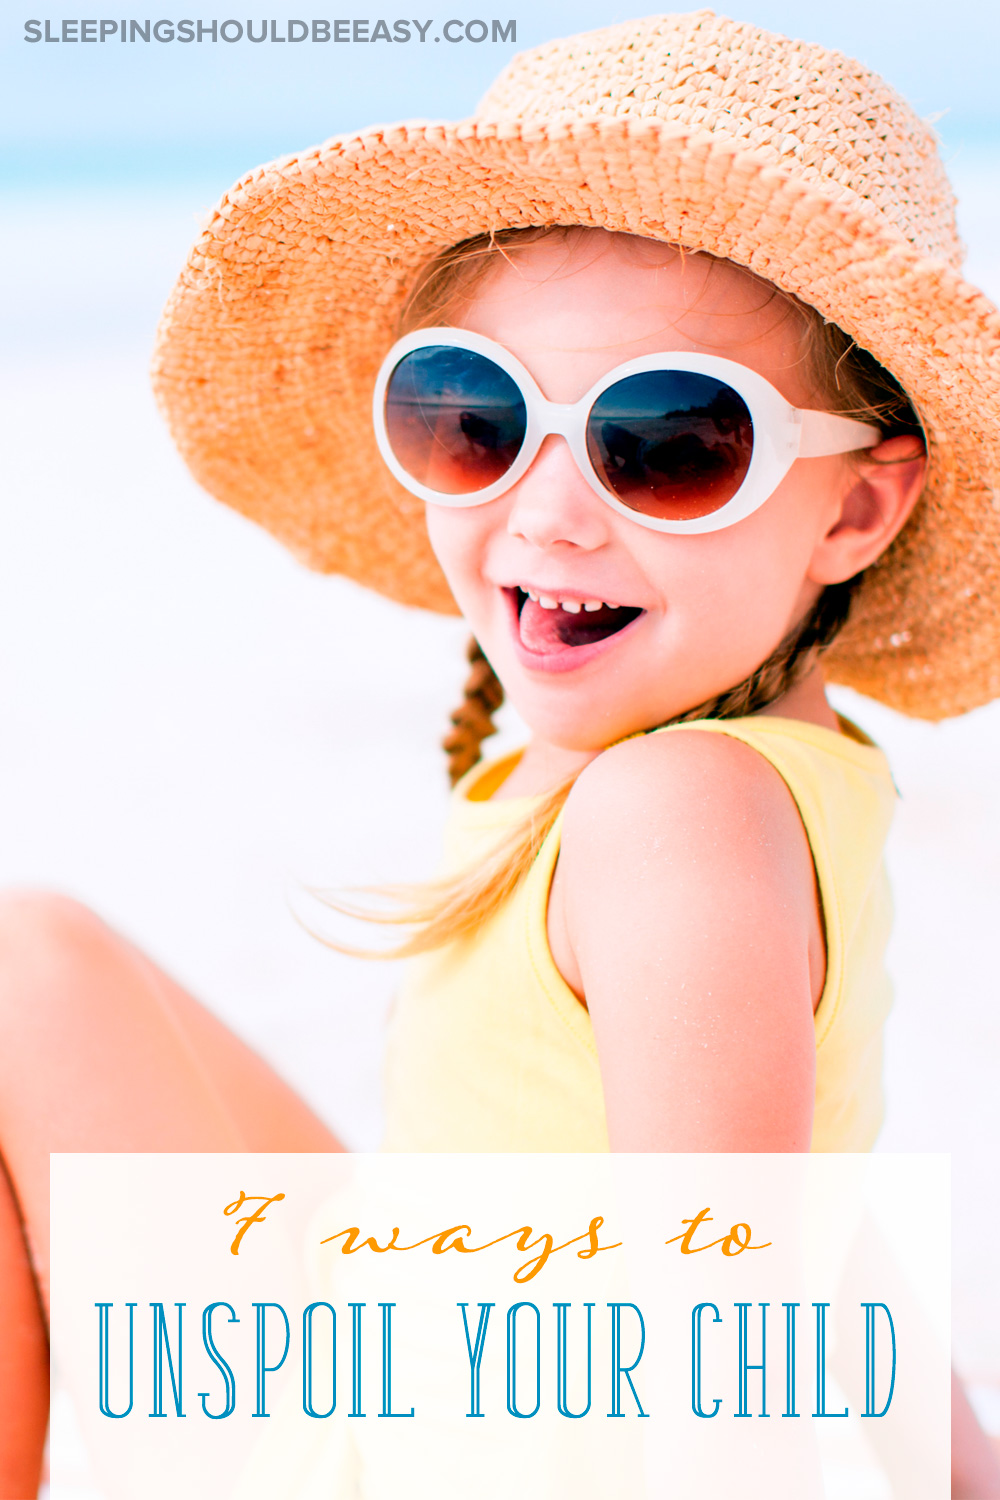 You've seen the warning signs that your child is getting spoiled. Don't worry, it's not too late. Learn the 7 practical ways on how to unspoil your child.